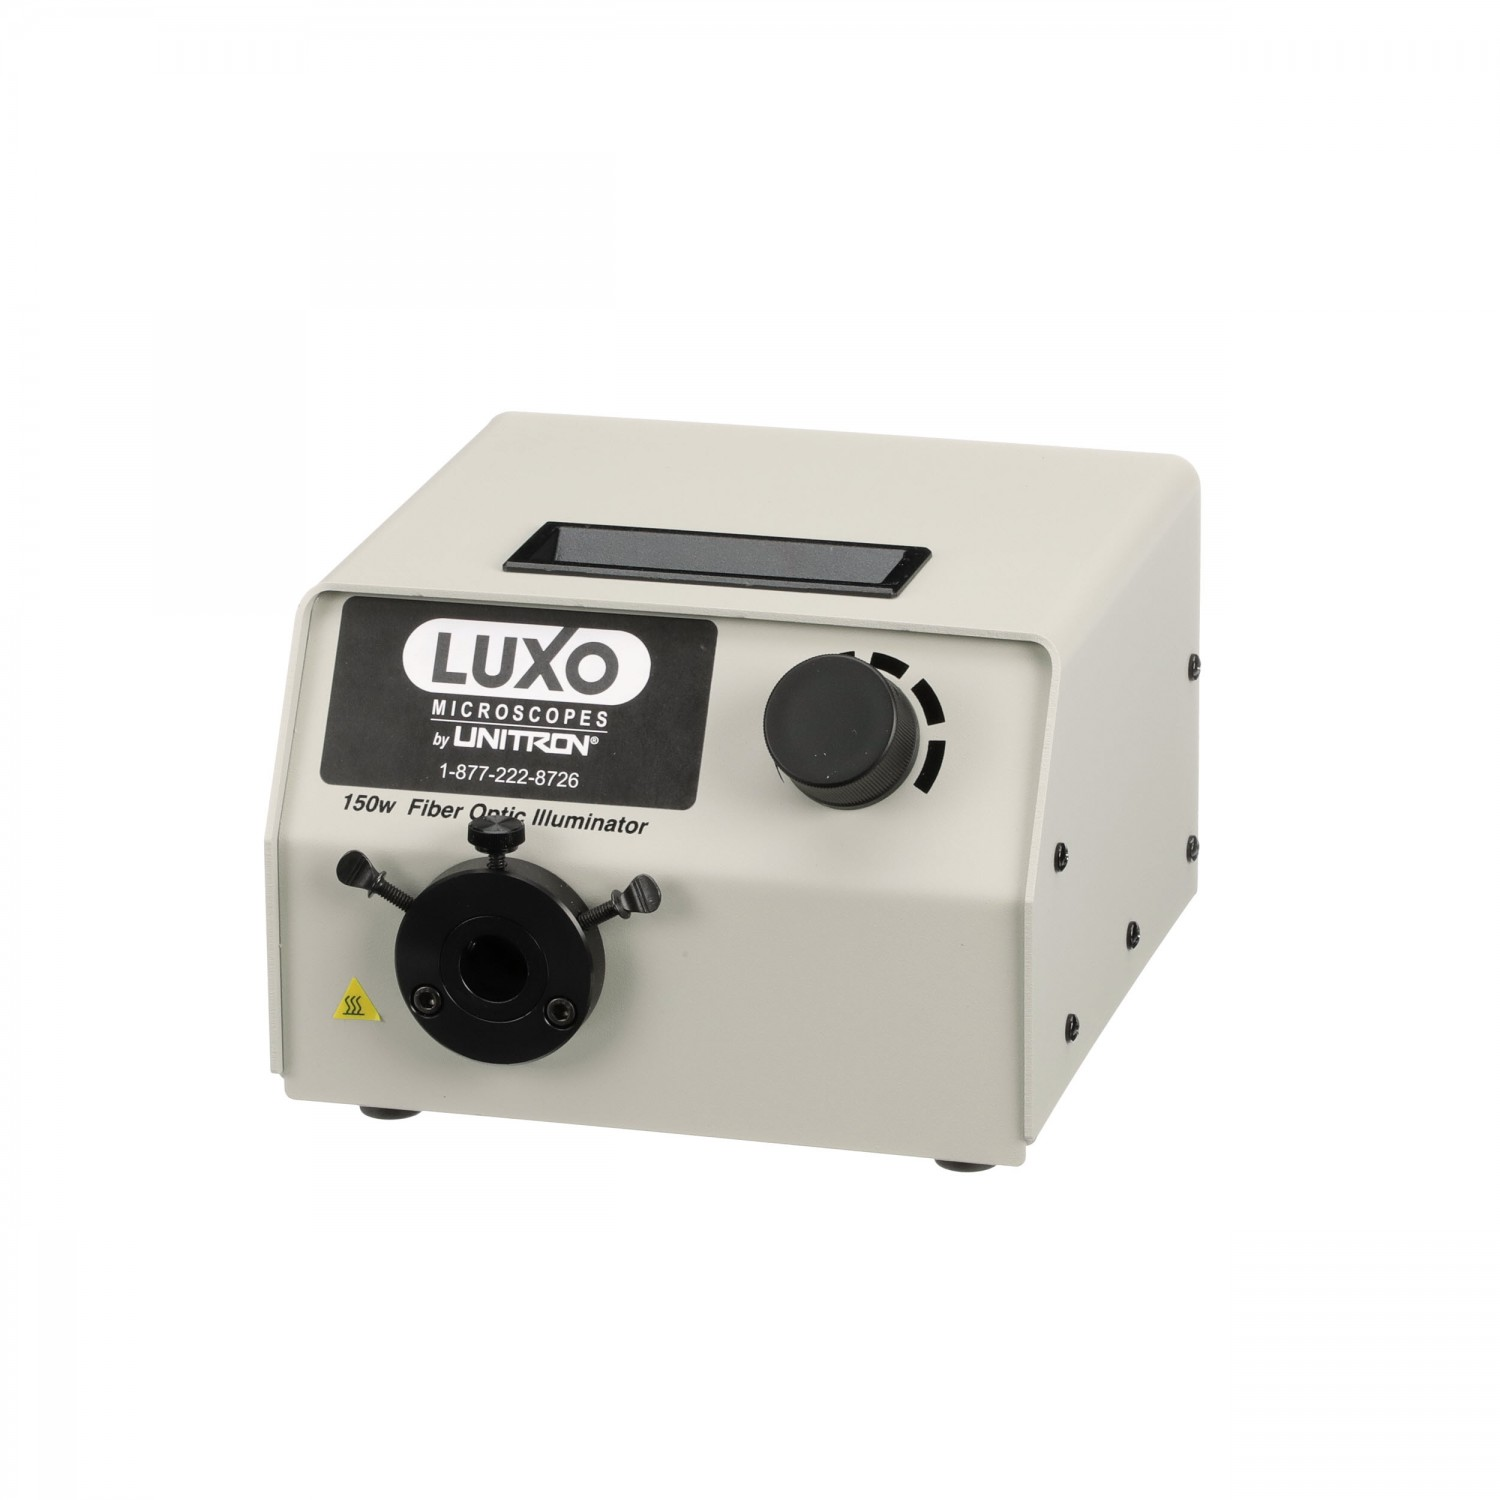 Luxo LFOD150 Microscope, Fiber Optic Illuminator